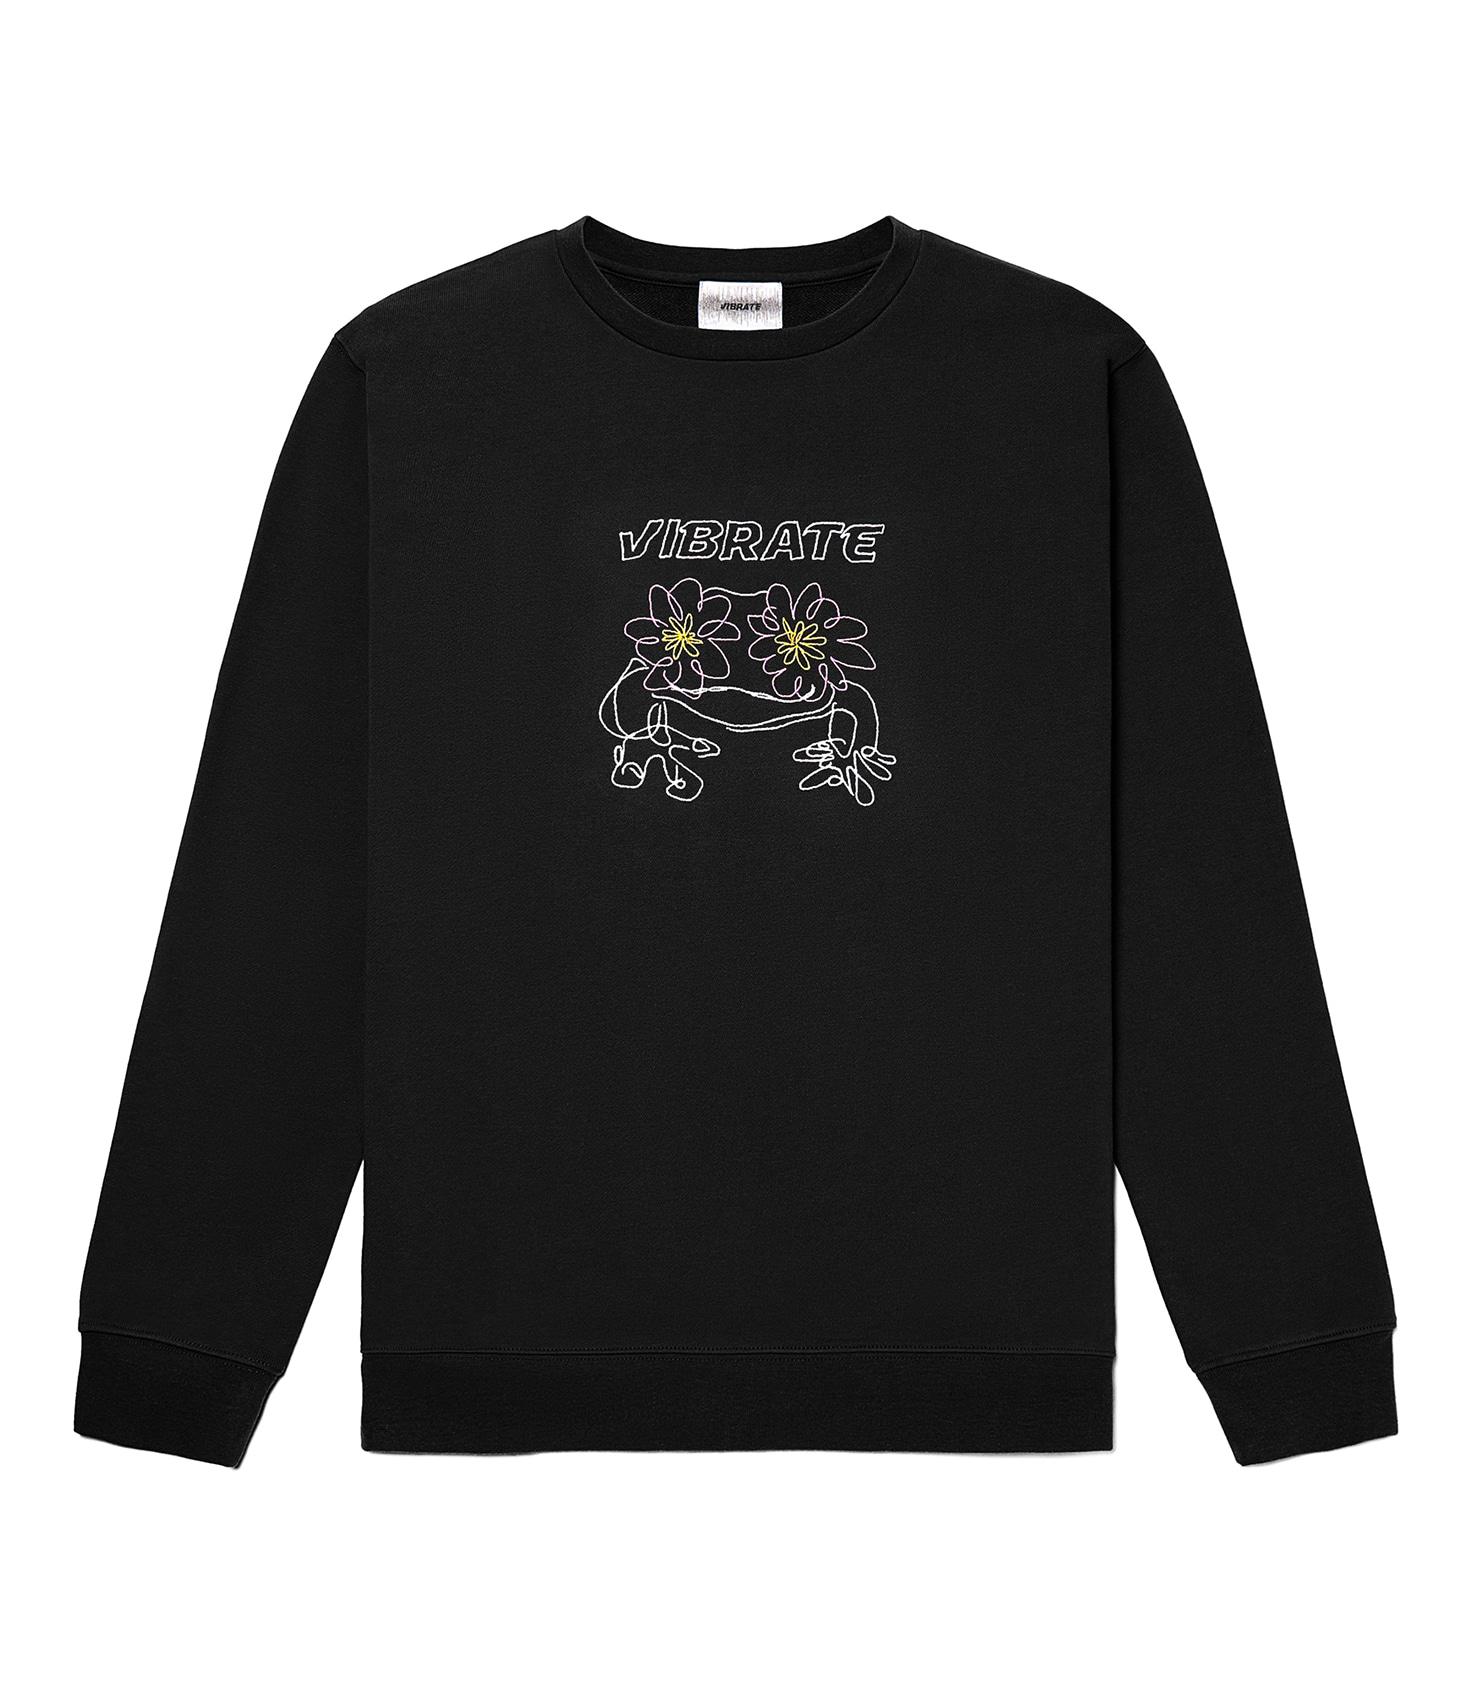 POP-EYES FROG LOGO SWEATSHIRTS (BLACK)